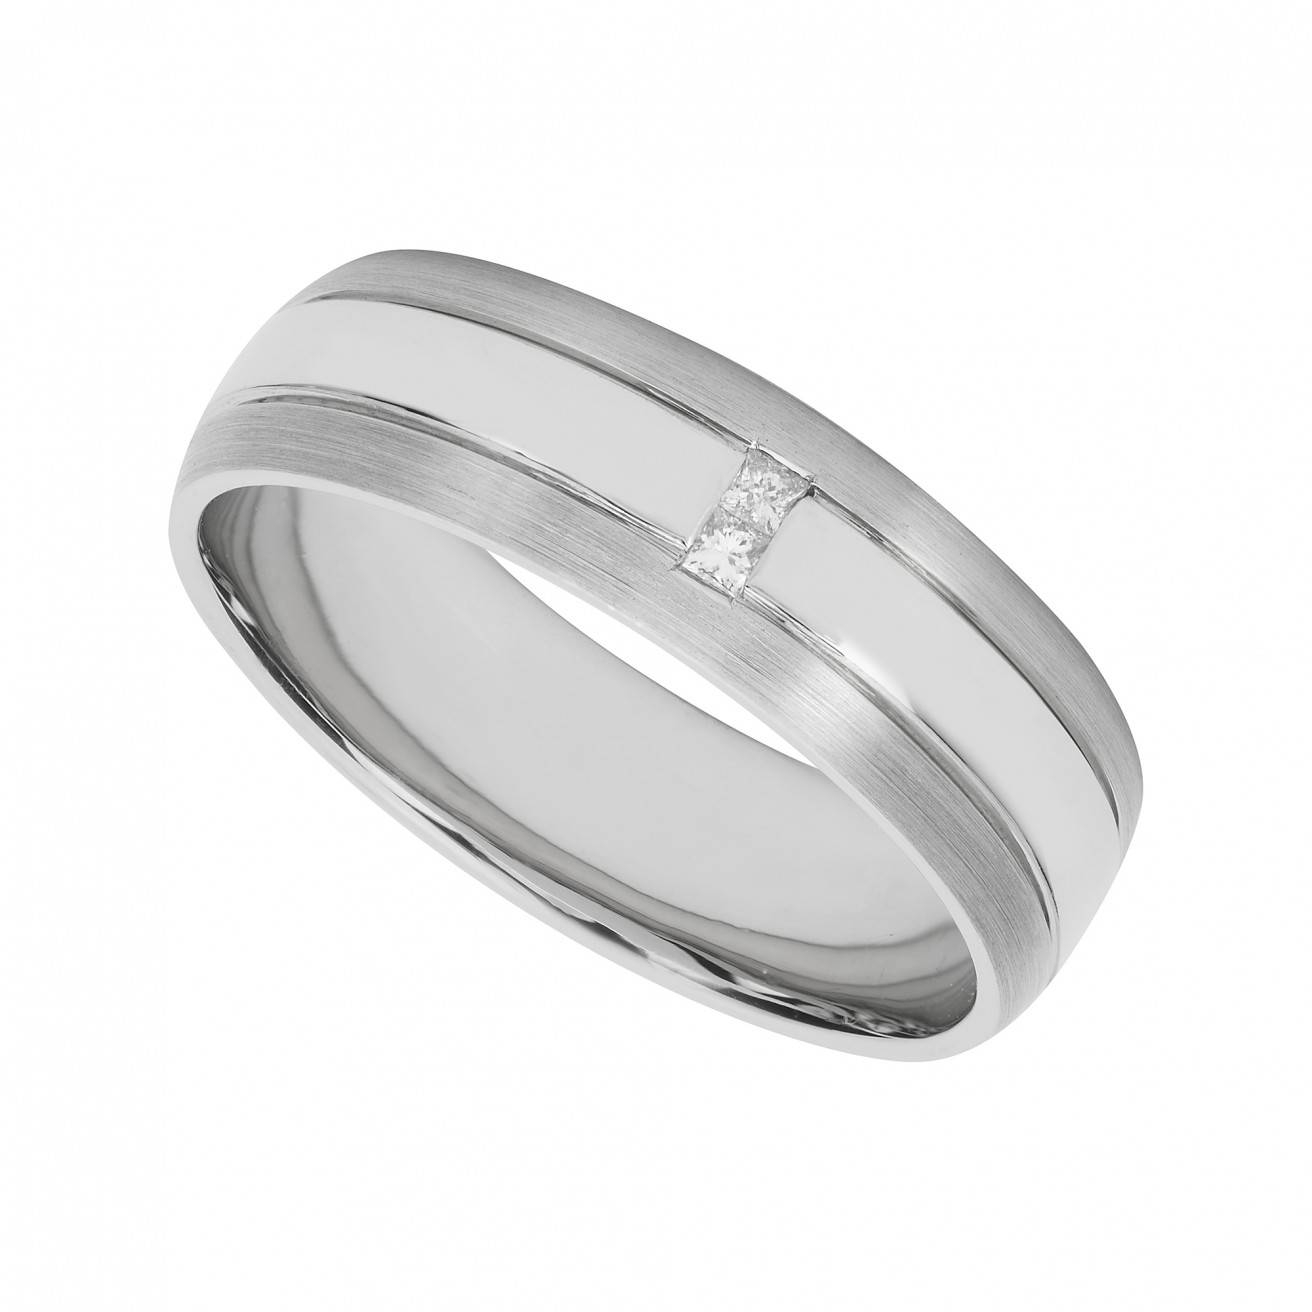 Buy Wedding Rings – Diamond, Platinum, Silver, Gold – Fraser Hart With Regard To Platinum Diamond Mens Wedding Rings (View 4 of 15)